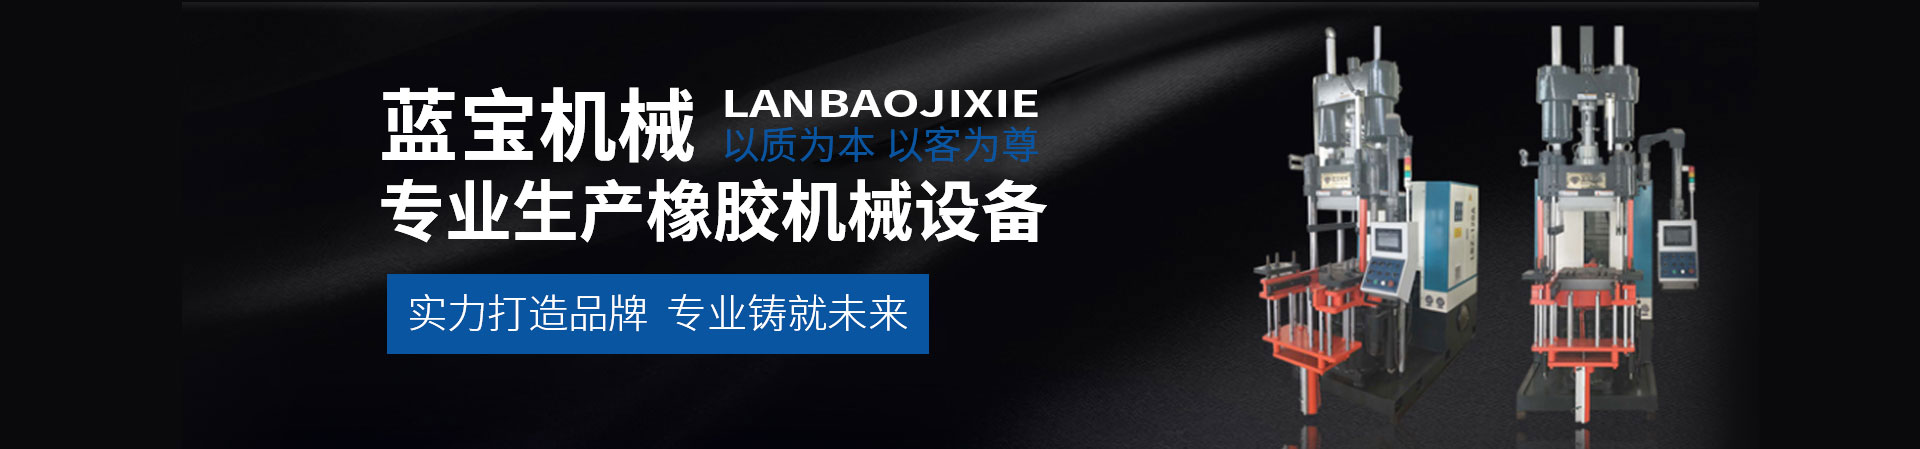 http://www.lanbaojixie.com/data/upload/202008/20200804154007_381.jpg